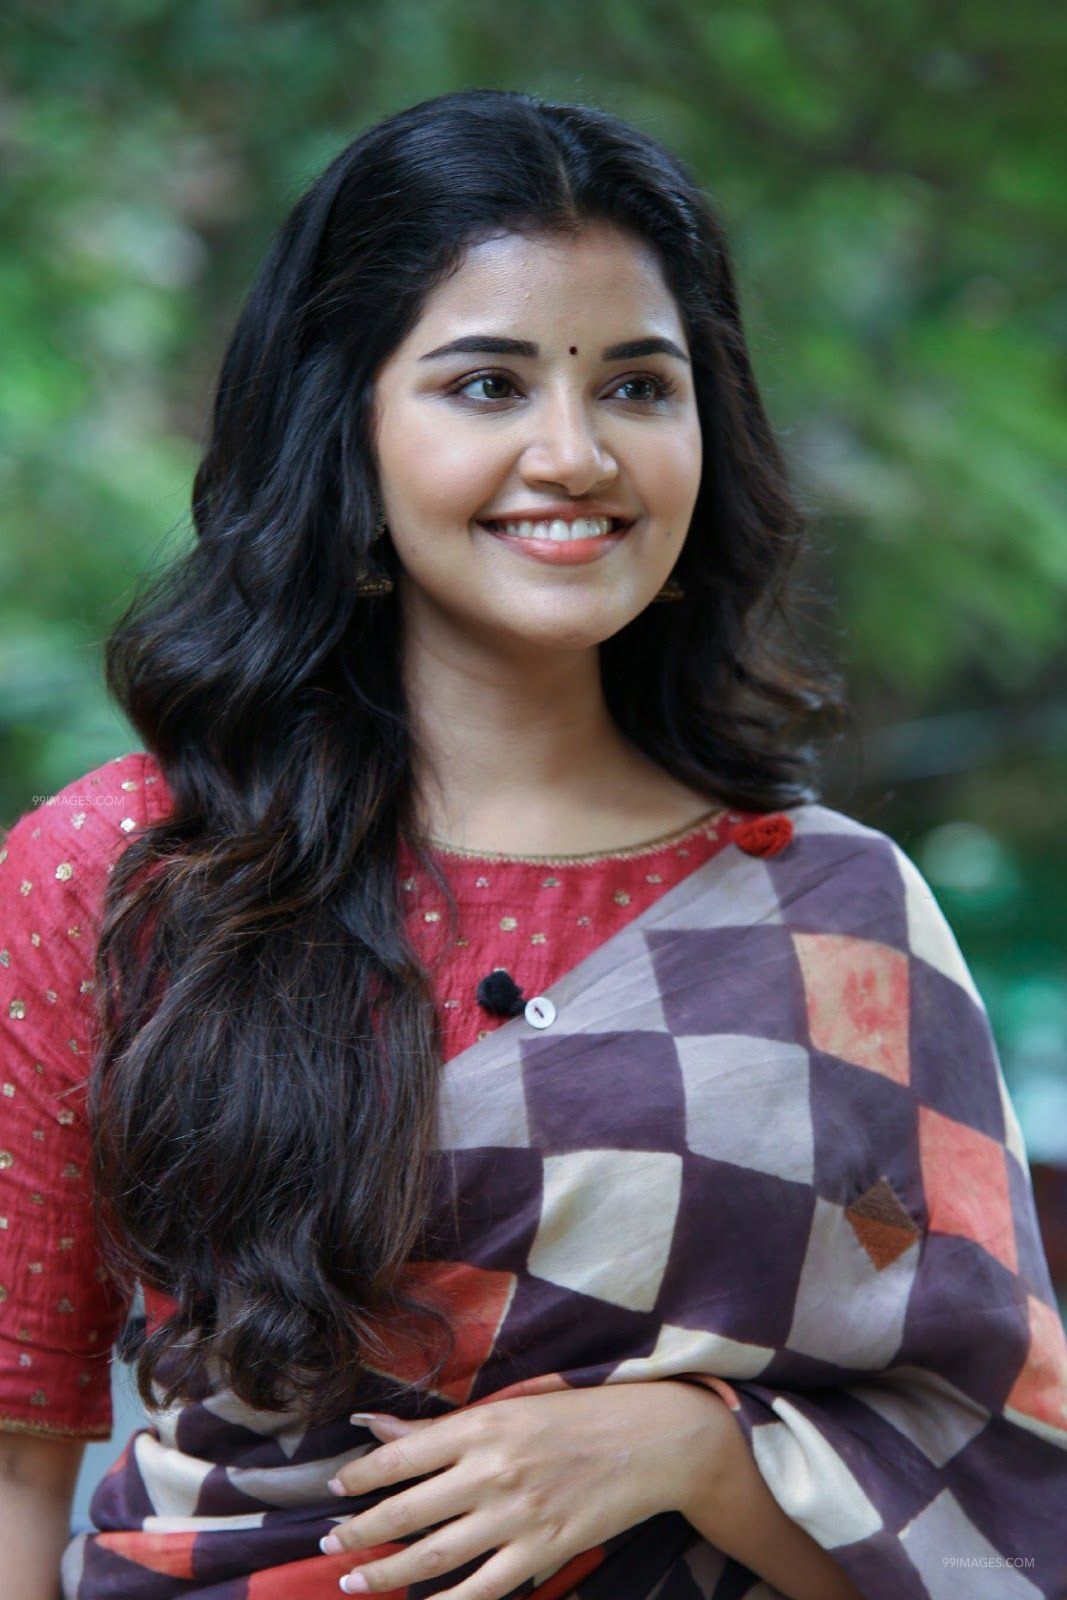 Anupama Parameswaran HD Wallpapers (Desktop Background / Android / iPhone) (1080p, 4k) (82428) - Anupama Parameswaran